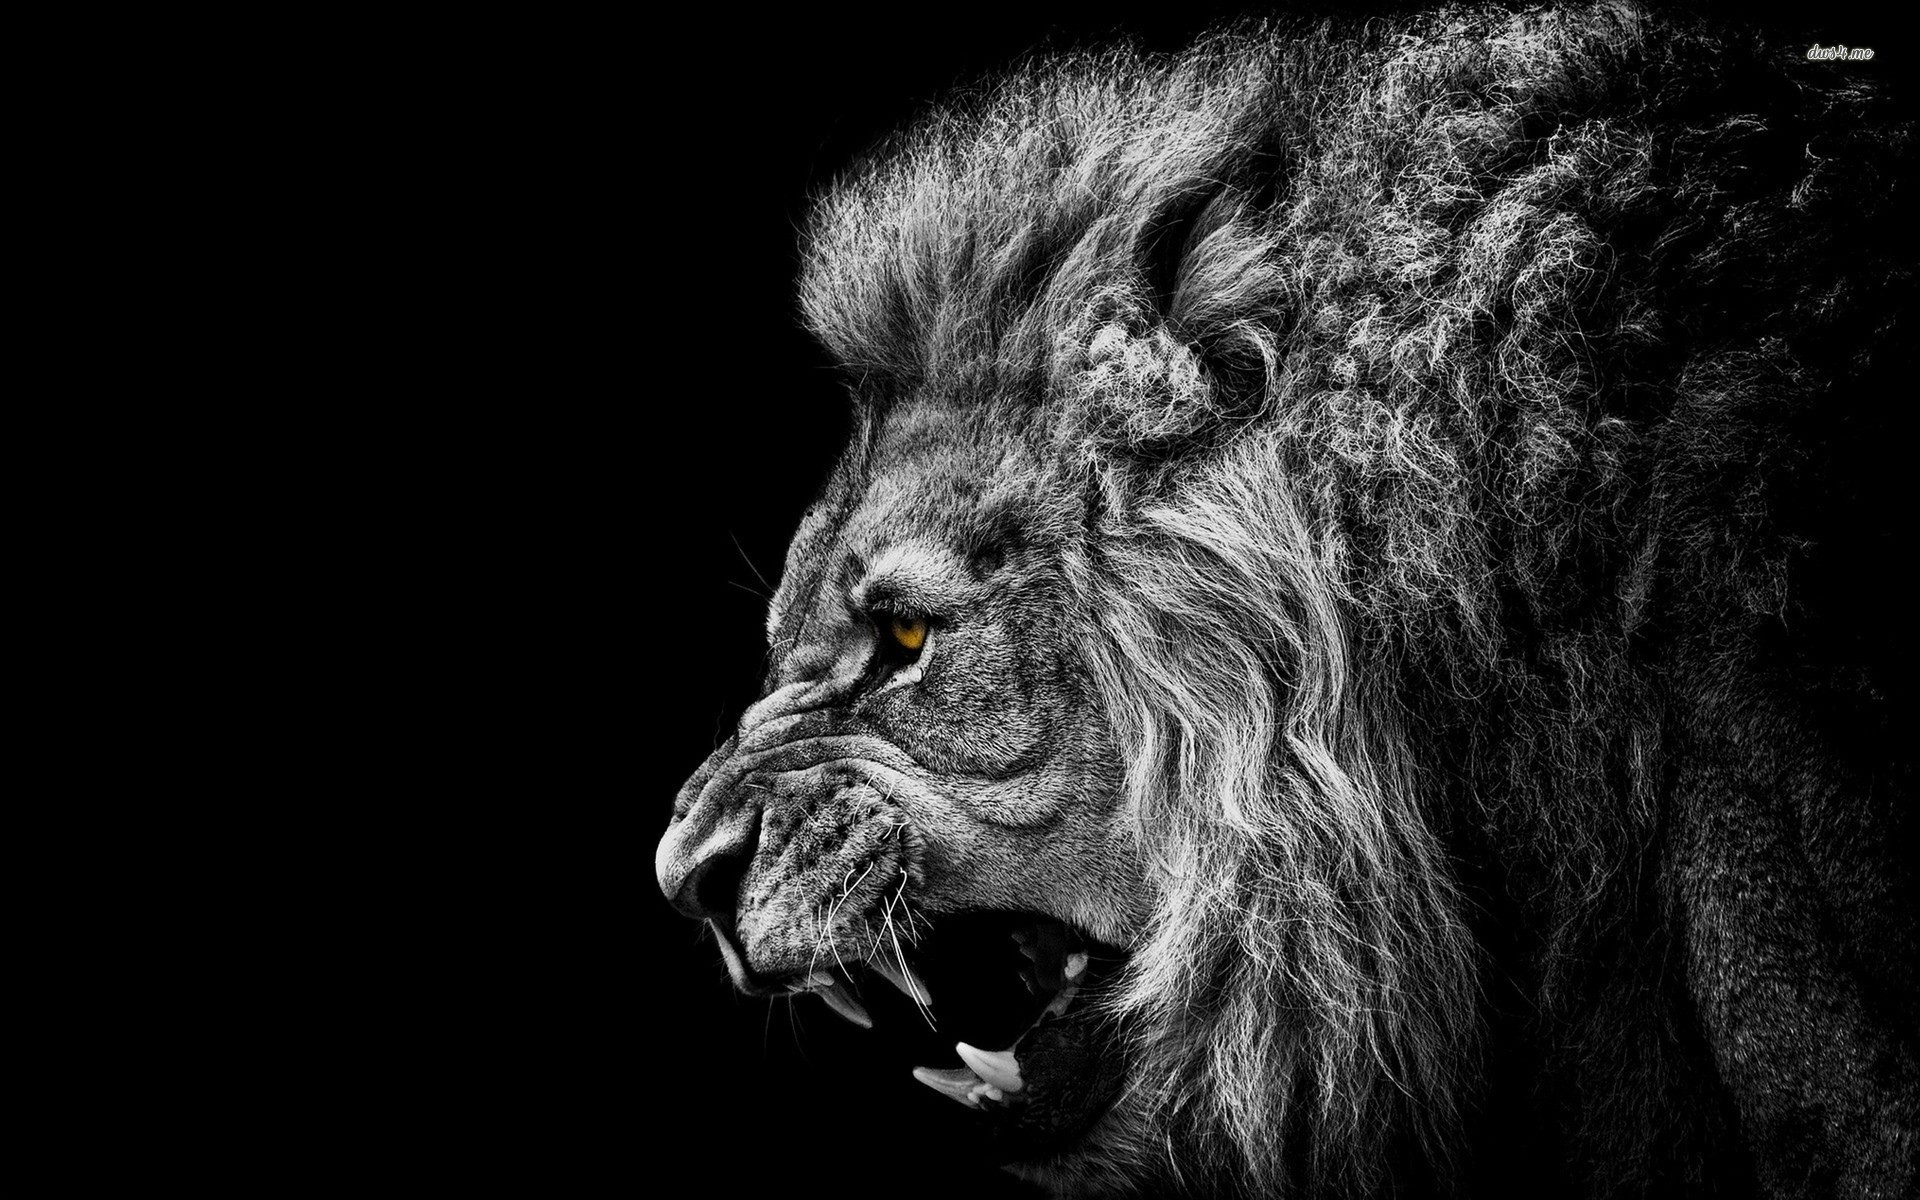 Roaring Lion Wallpaper Full HD Roaring Black And White Abstract